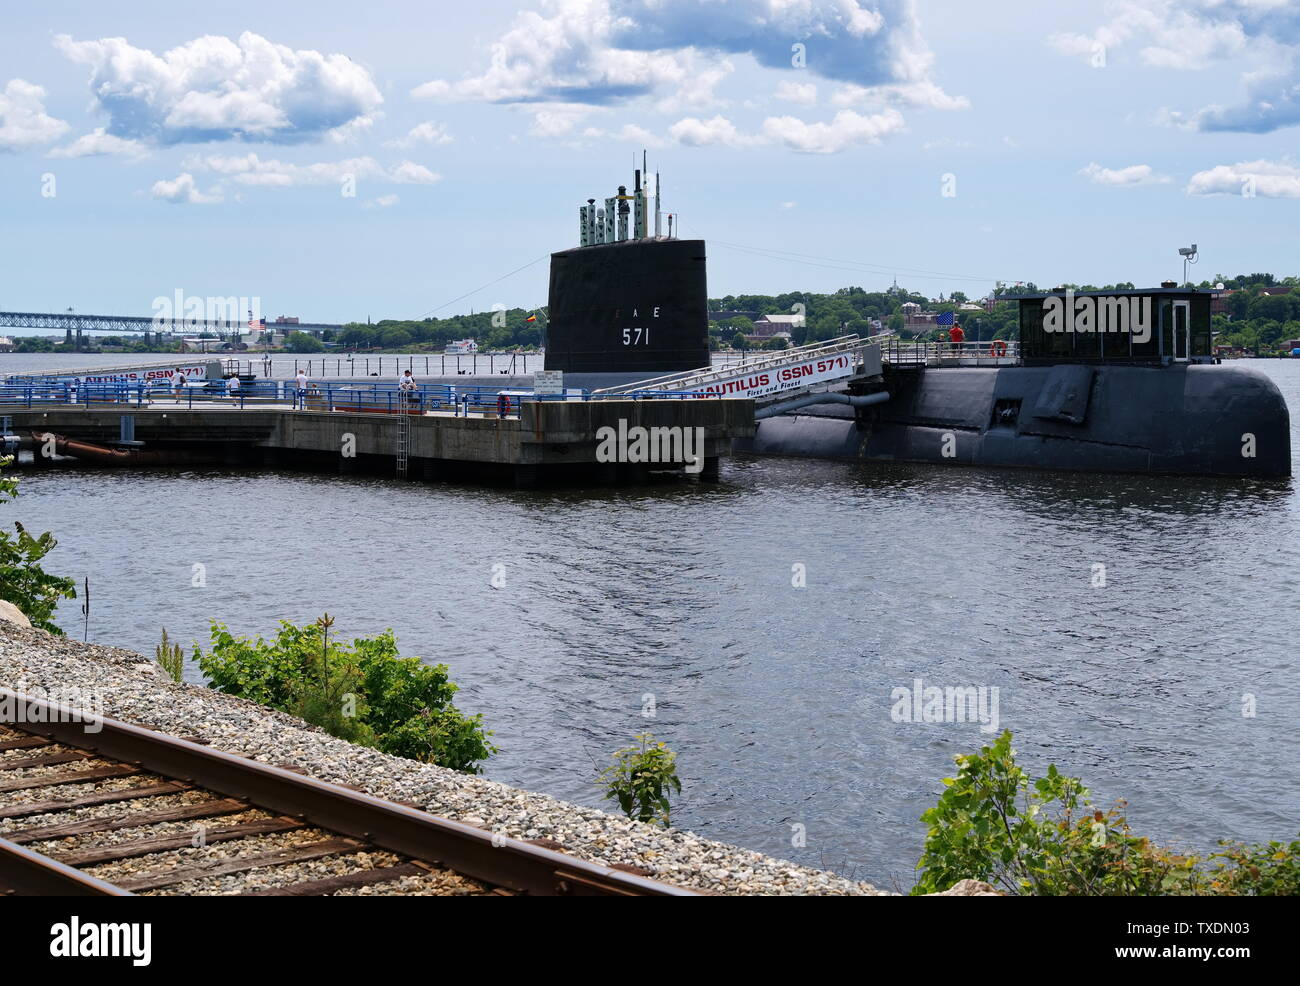 Submarine Force Museum, Groton CT USA, Jun 2019. The world`s first nuclear powered submarine the USS Nautilus is part of the Submarine Force Museum. - Stock Image